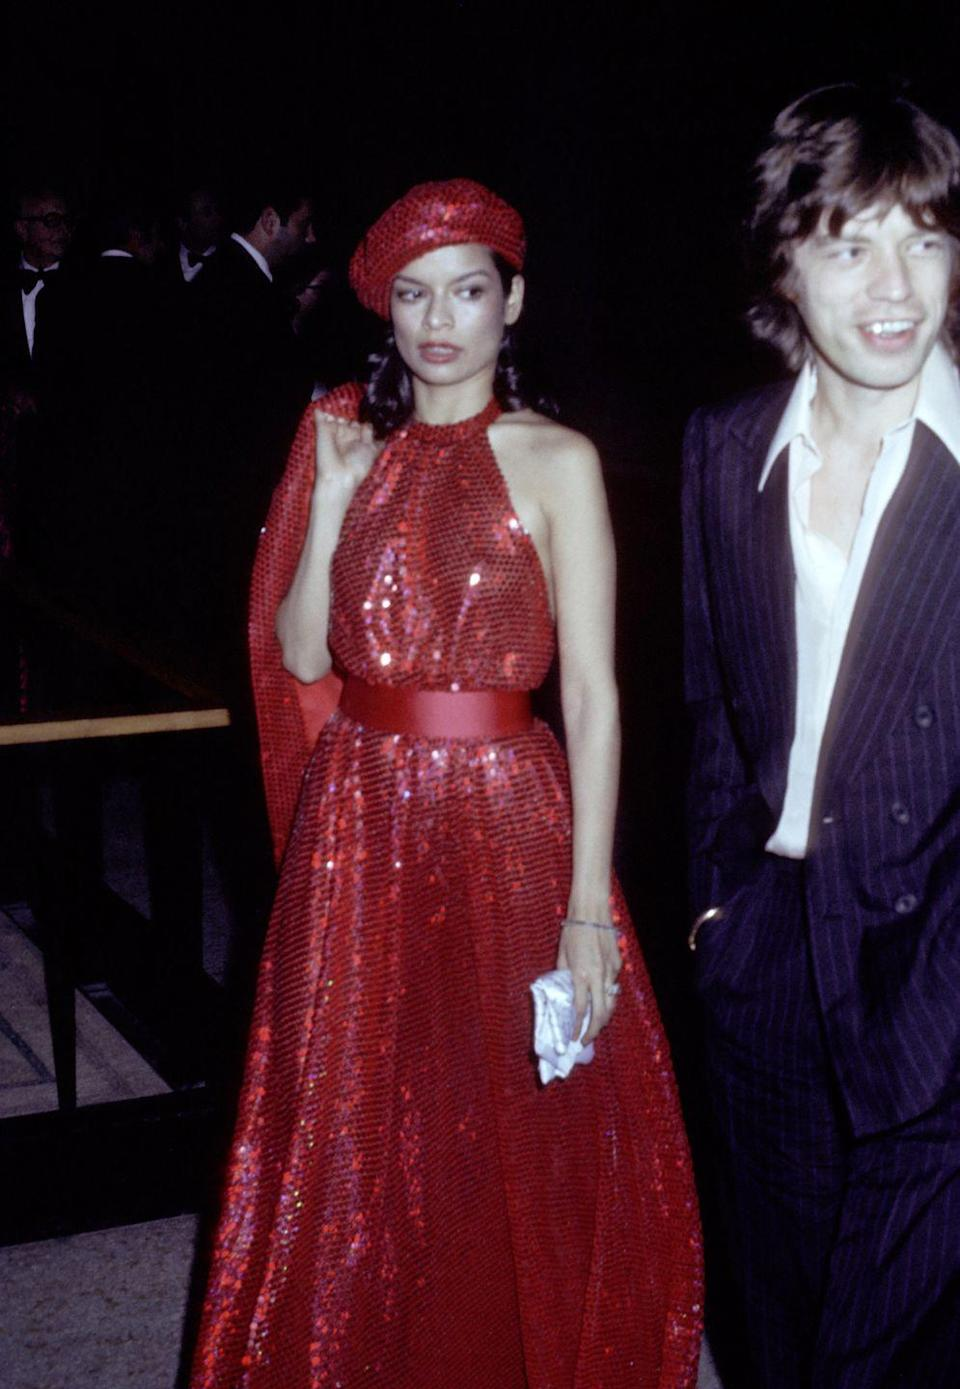 <p>Halter neck, belted waist, sequins—Bianca Jagger couldn't be trendier if she tried. With the late '70s came the years of Studio 54 and disco, which meant lamé fabric and breezy dresses. </p>